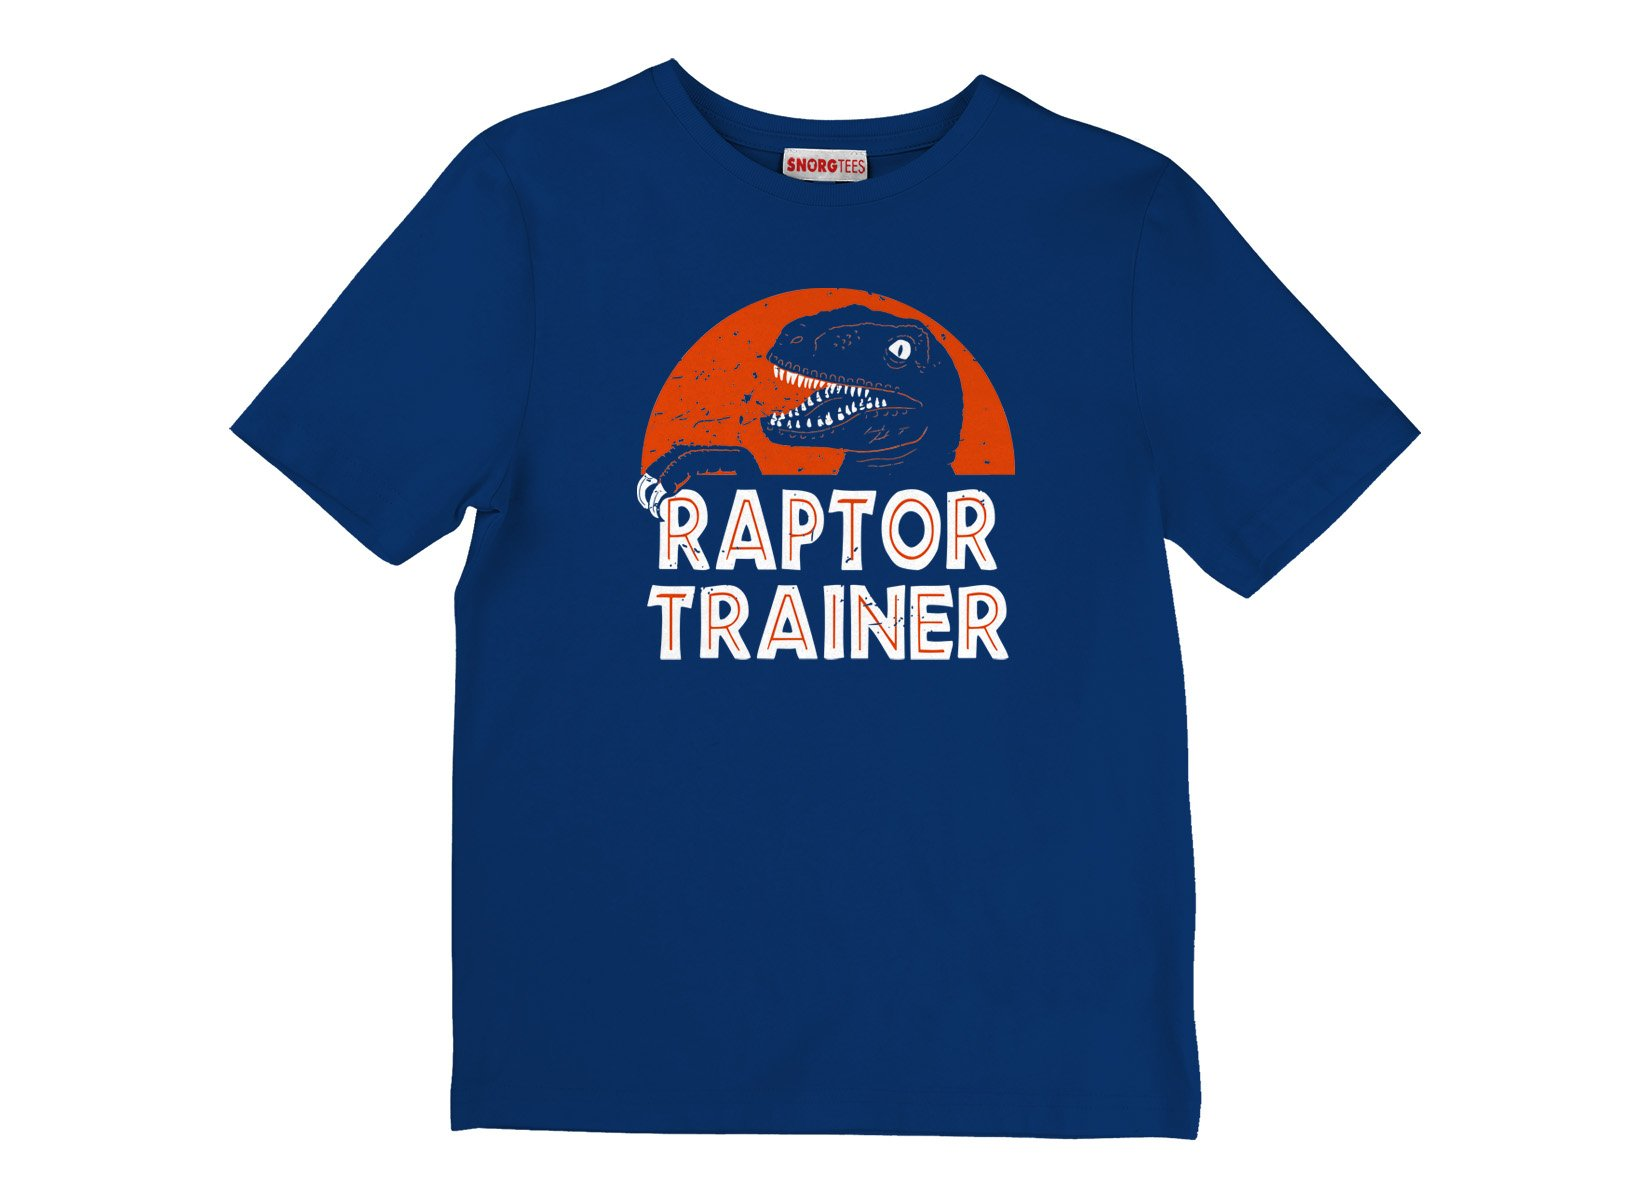 Raptor Trainer on Kids T-Shirt